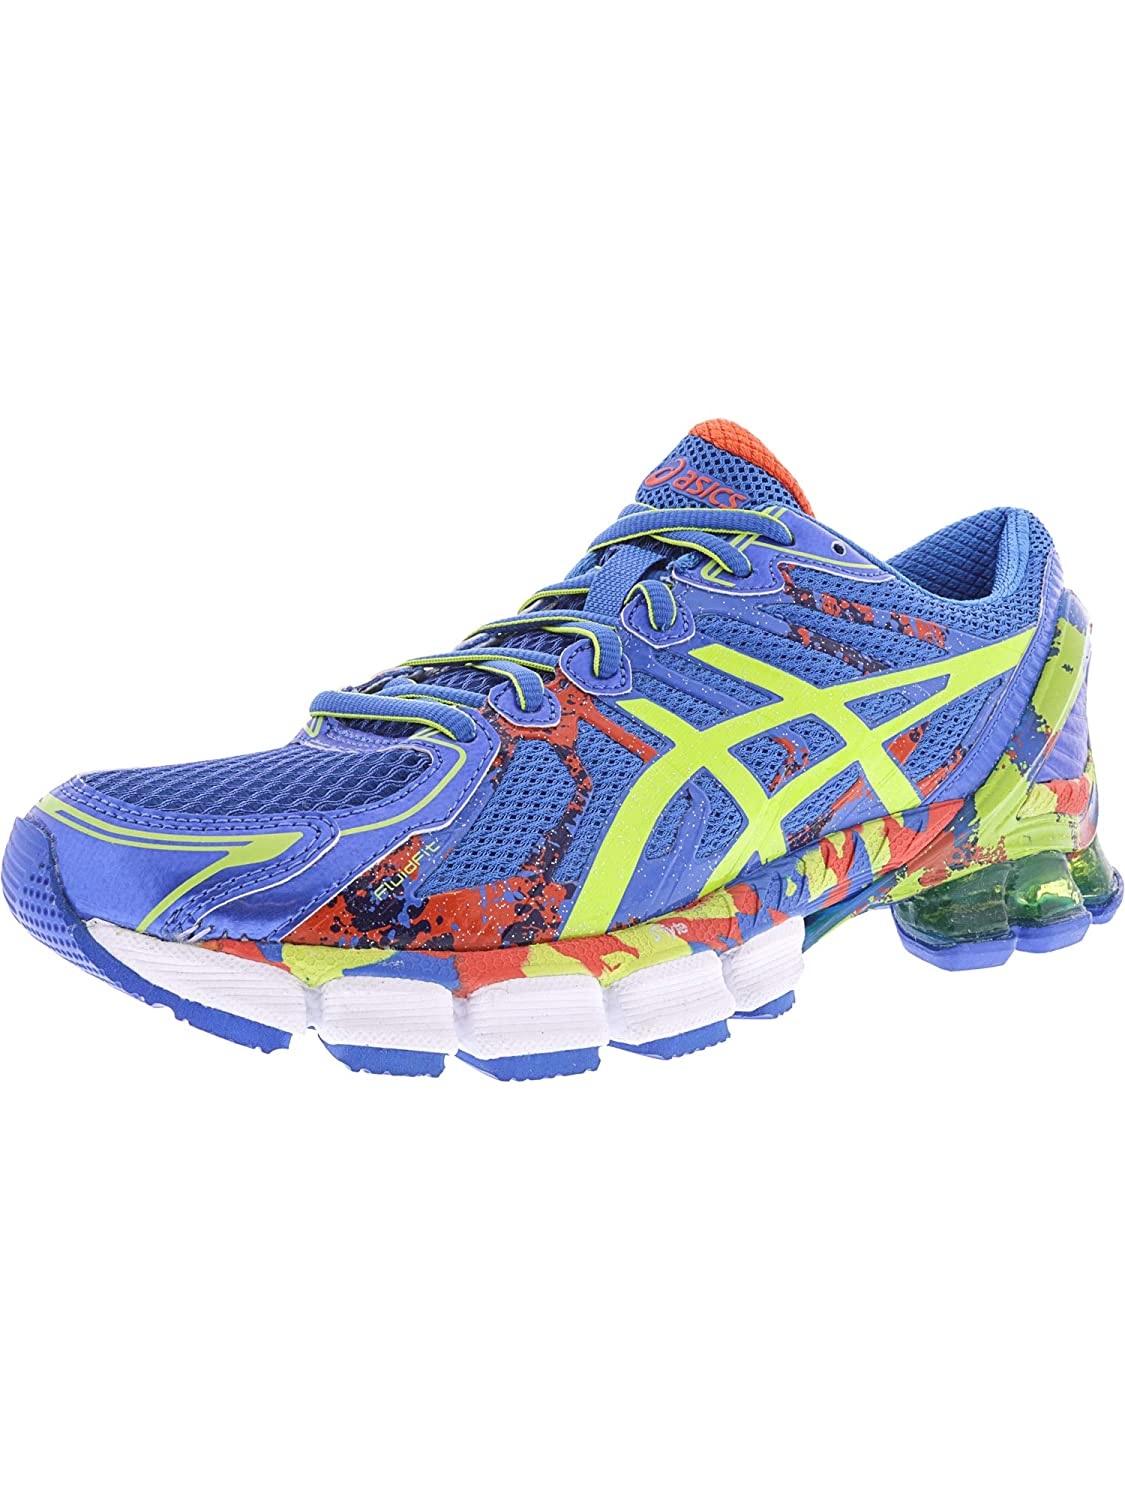 timeless design 7c6d9 f6b0f Amazon.com   ASICS Men s Gel-Sendai 2 Electric Blue Lime Cherry Tomato  Ankle-High Running Shoe - 7.5M   Running